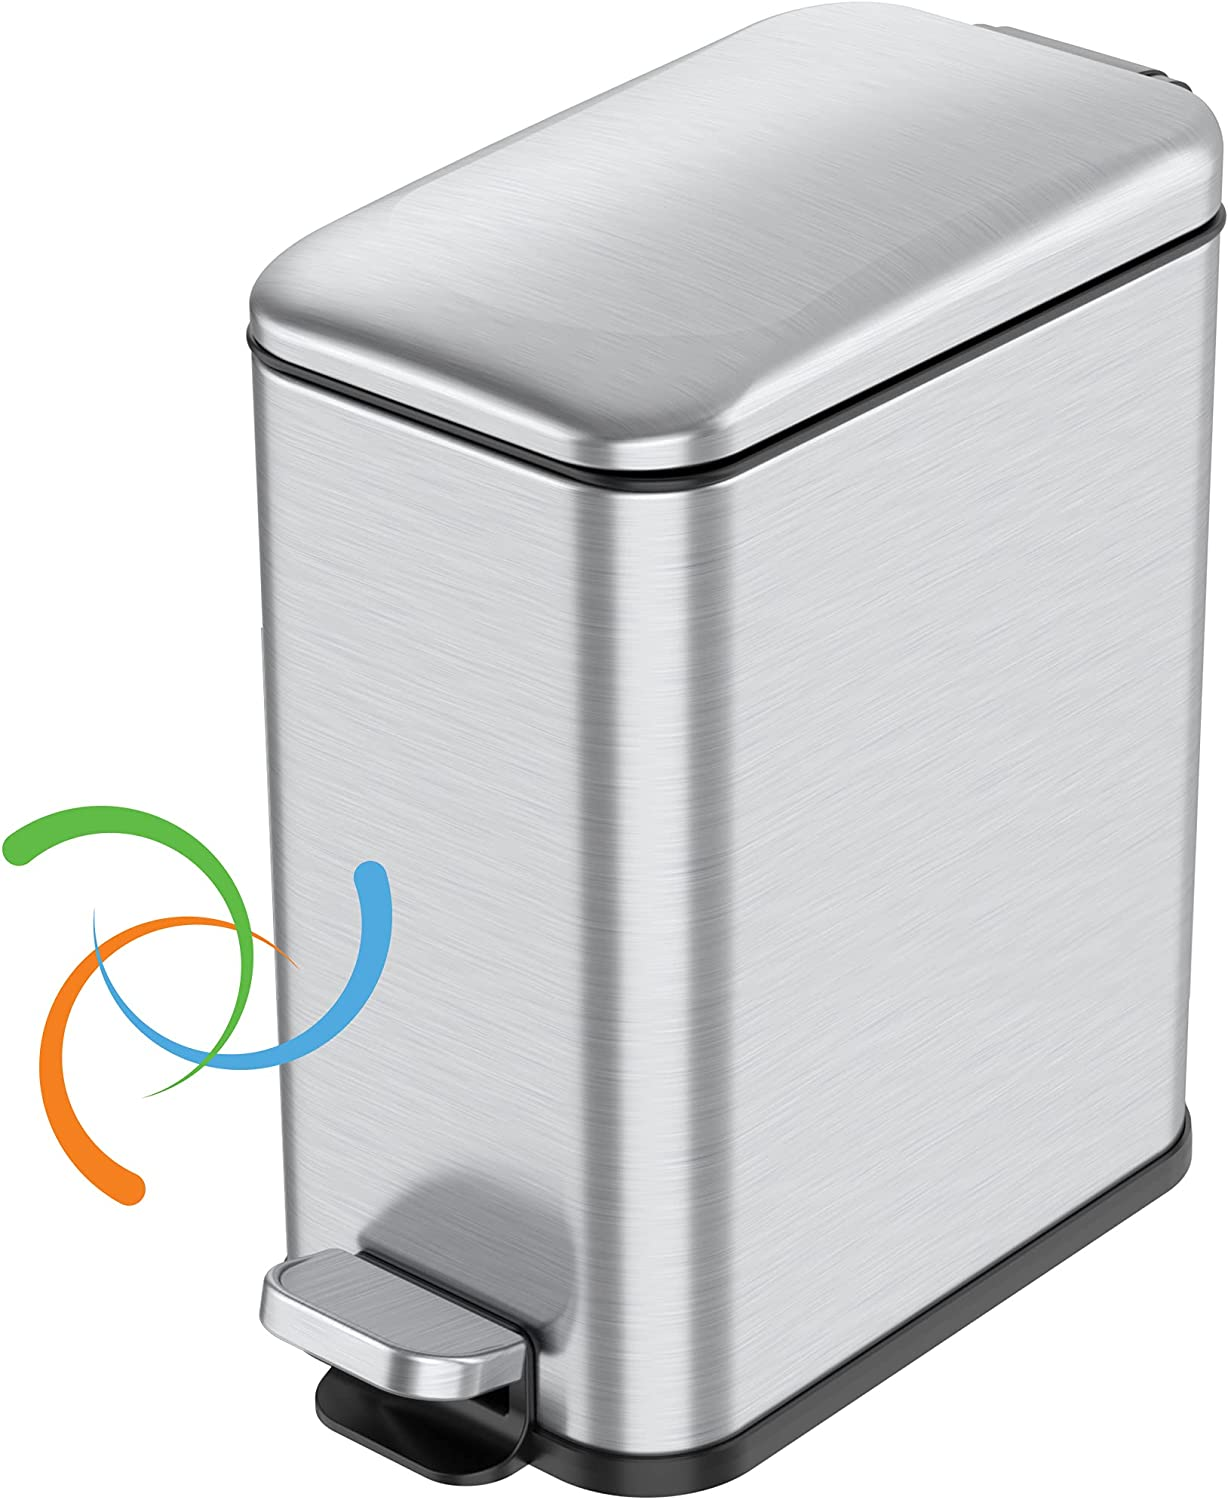 iTouchless SoftStep 1.3 Gallon Slim Bathroom Trash Can with Odor Filter and Removable Inner Bucket, Stainless Steel, 5 Liter Small Garbage Step Bin, Bathroom, Bedroom, Business, Home, Office Cubicle